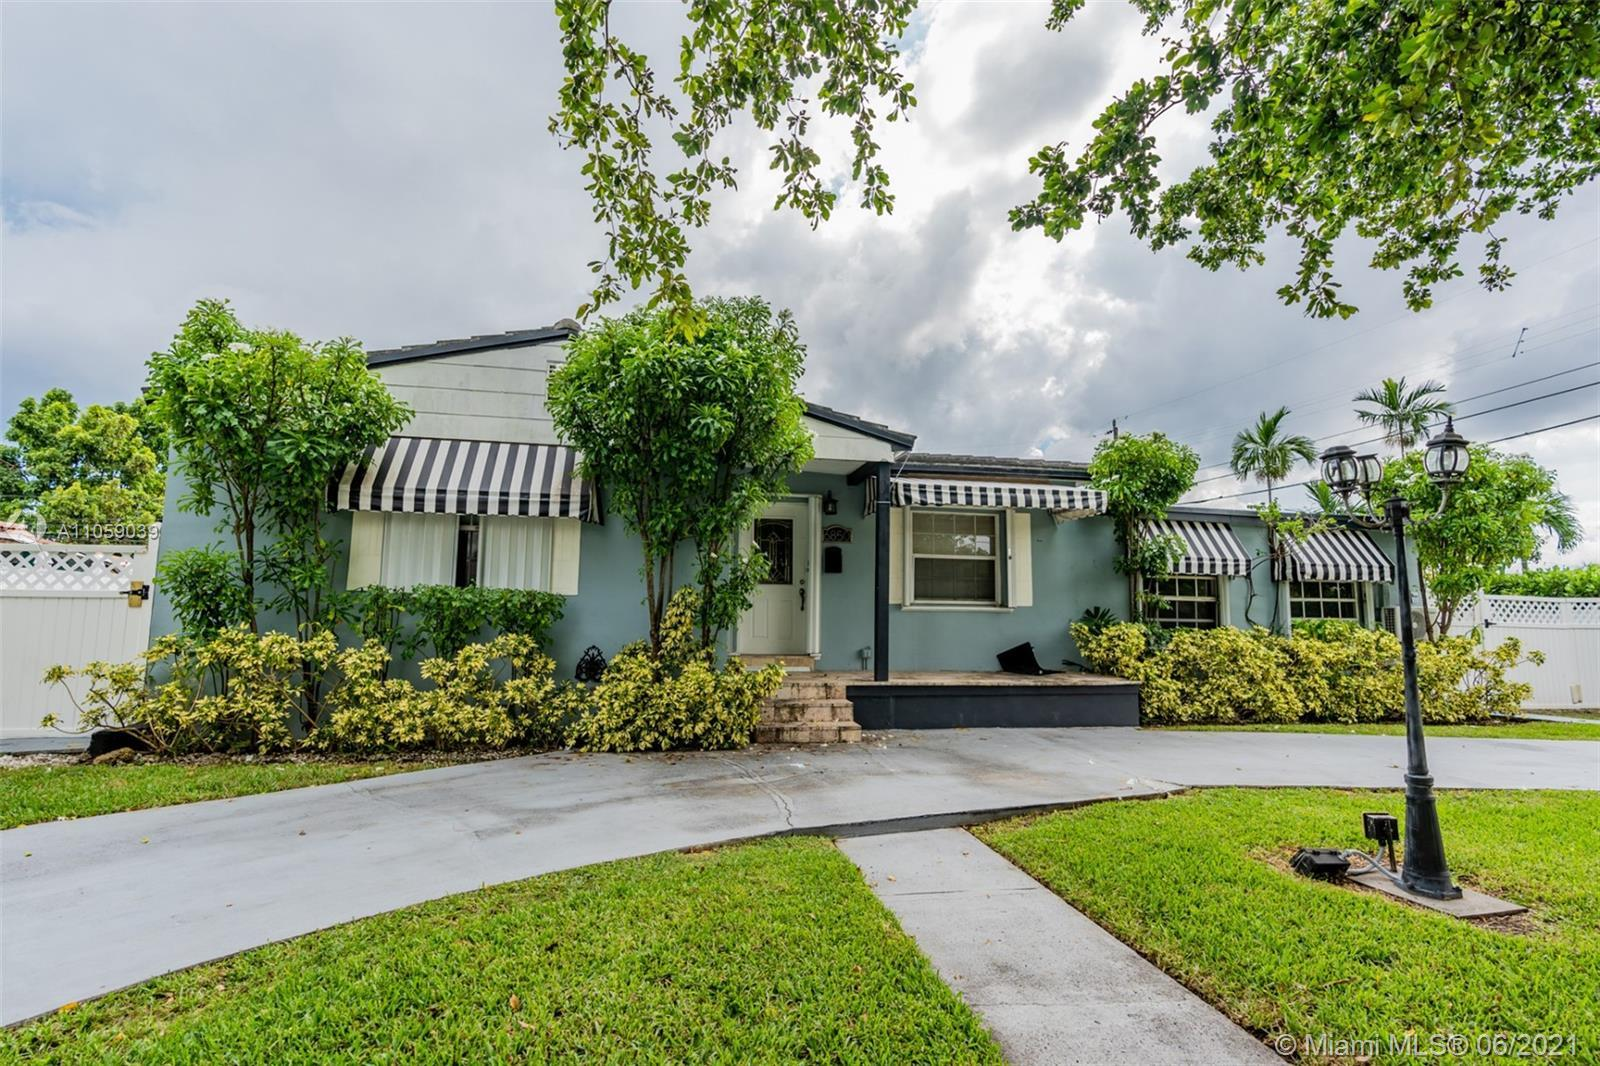 t's all about looks and we dont judge you! This picturesque and recently remodeled house is perfect